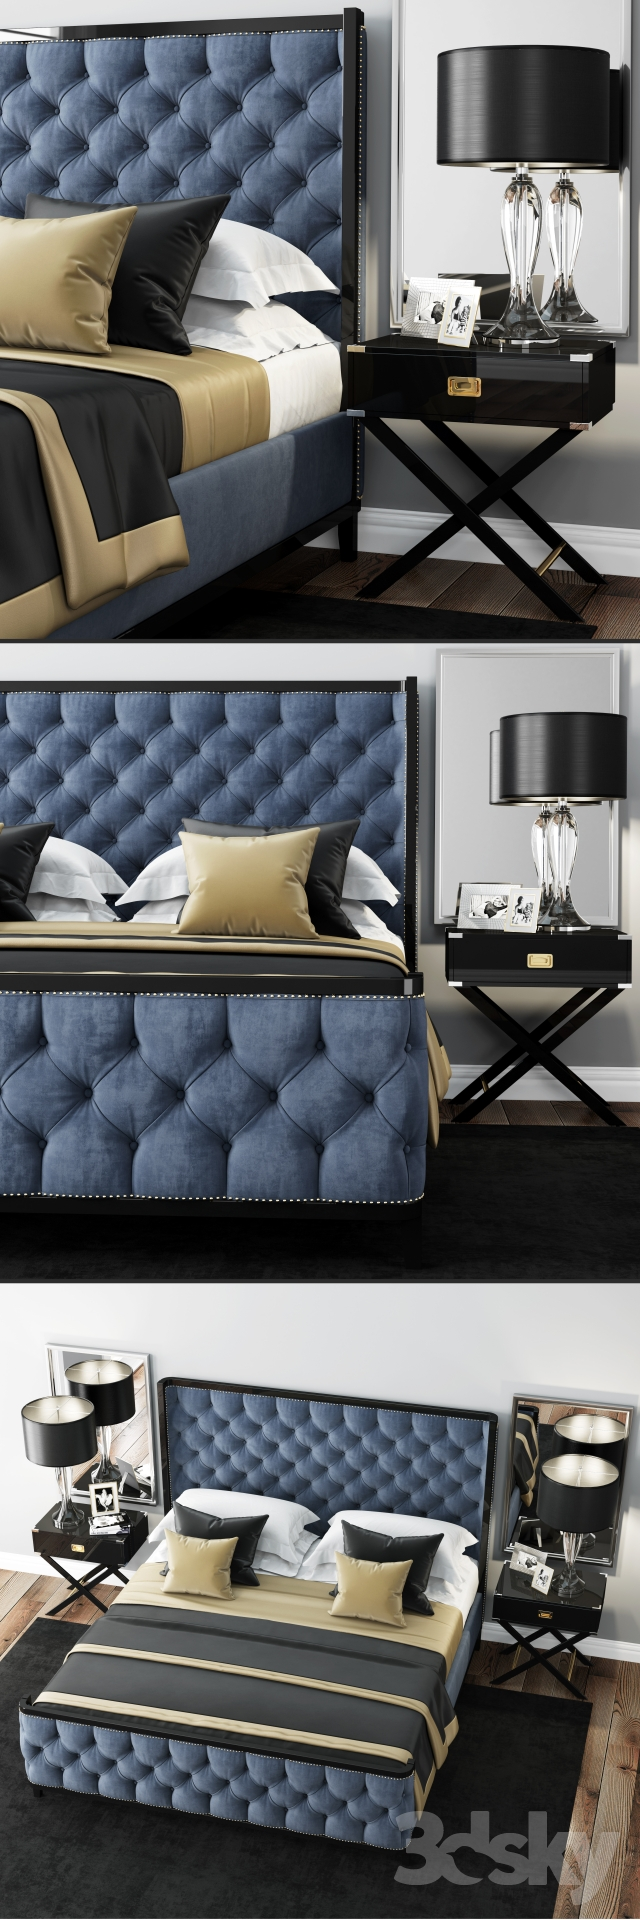 Bed LuXeo USA Kensington Queen Tufted